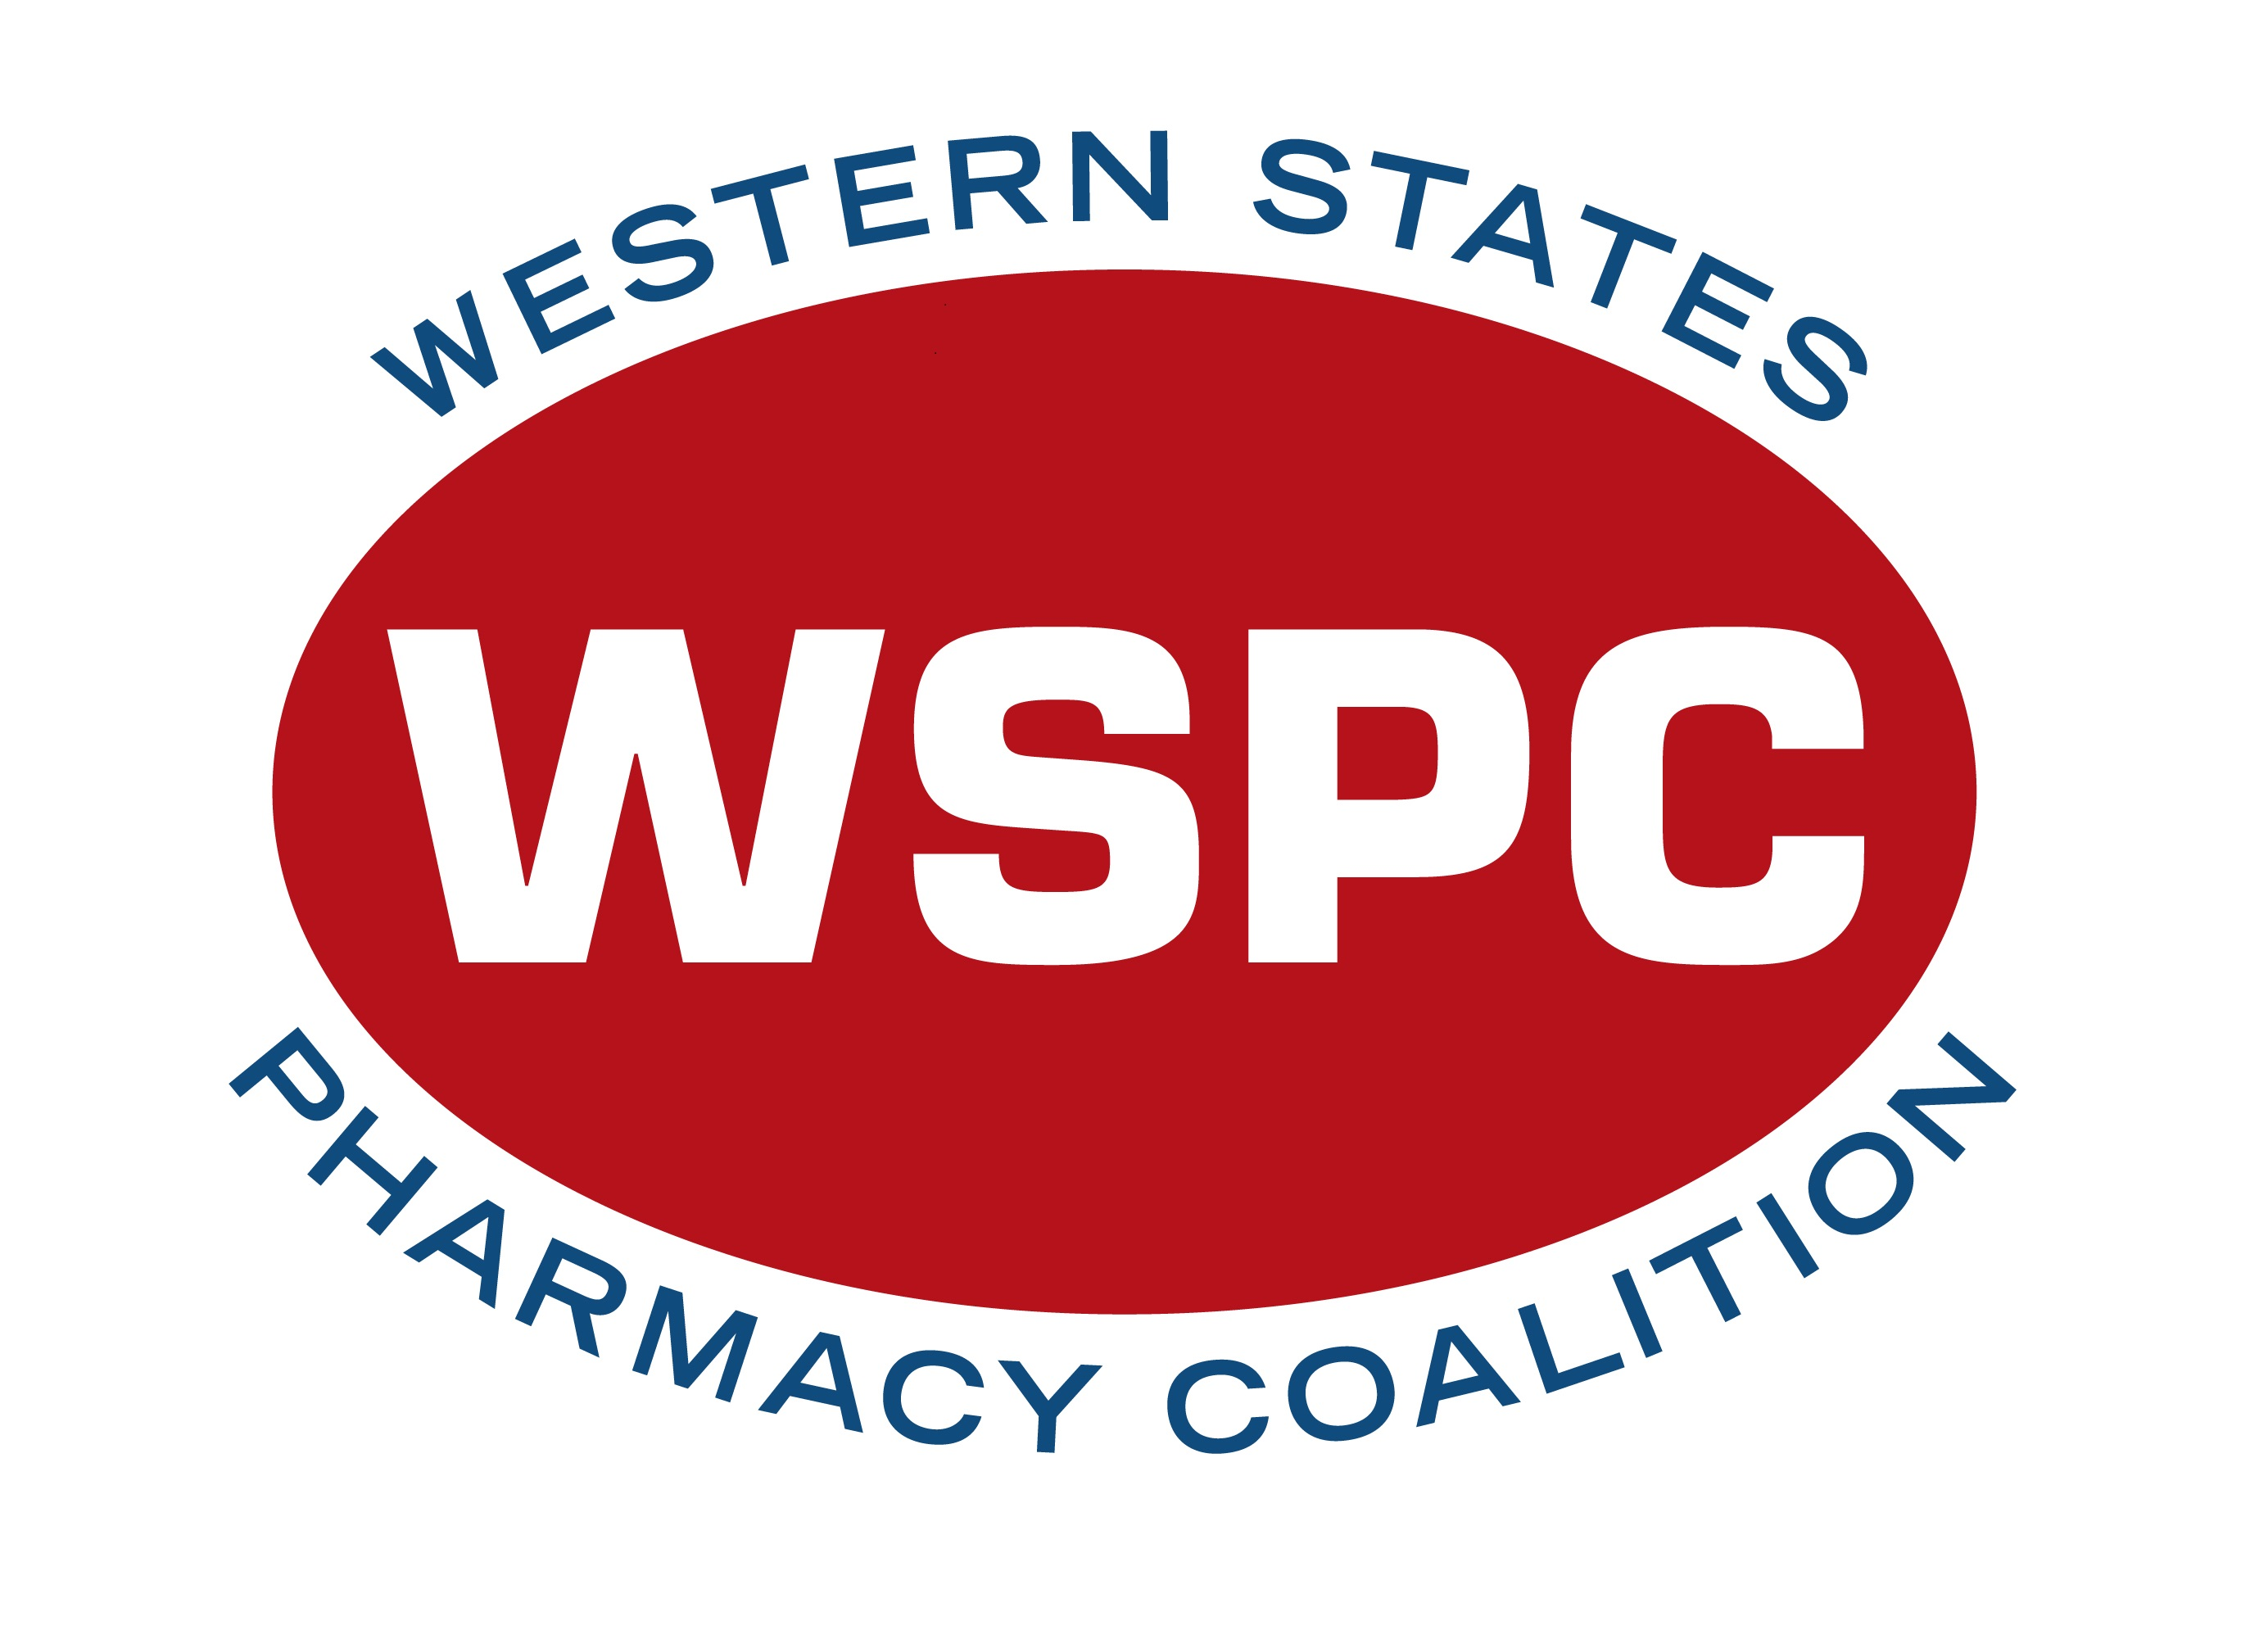 Western States Pharmacy Coalition